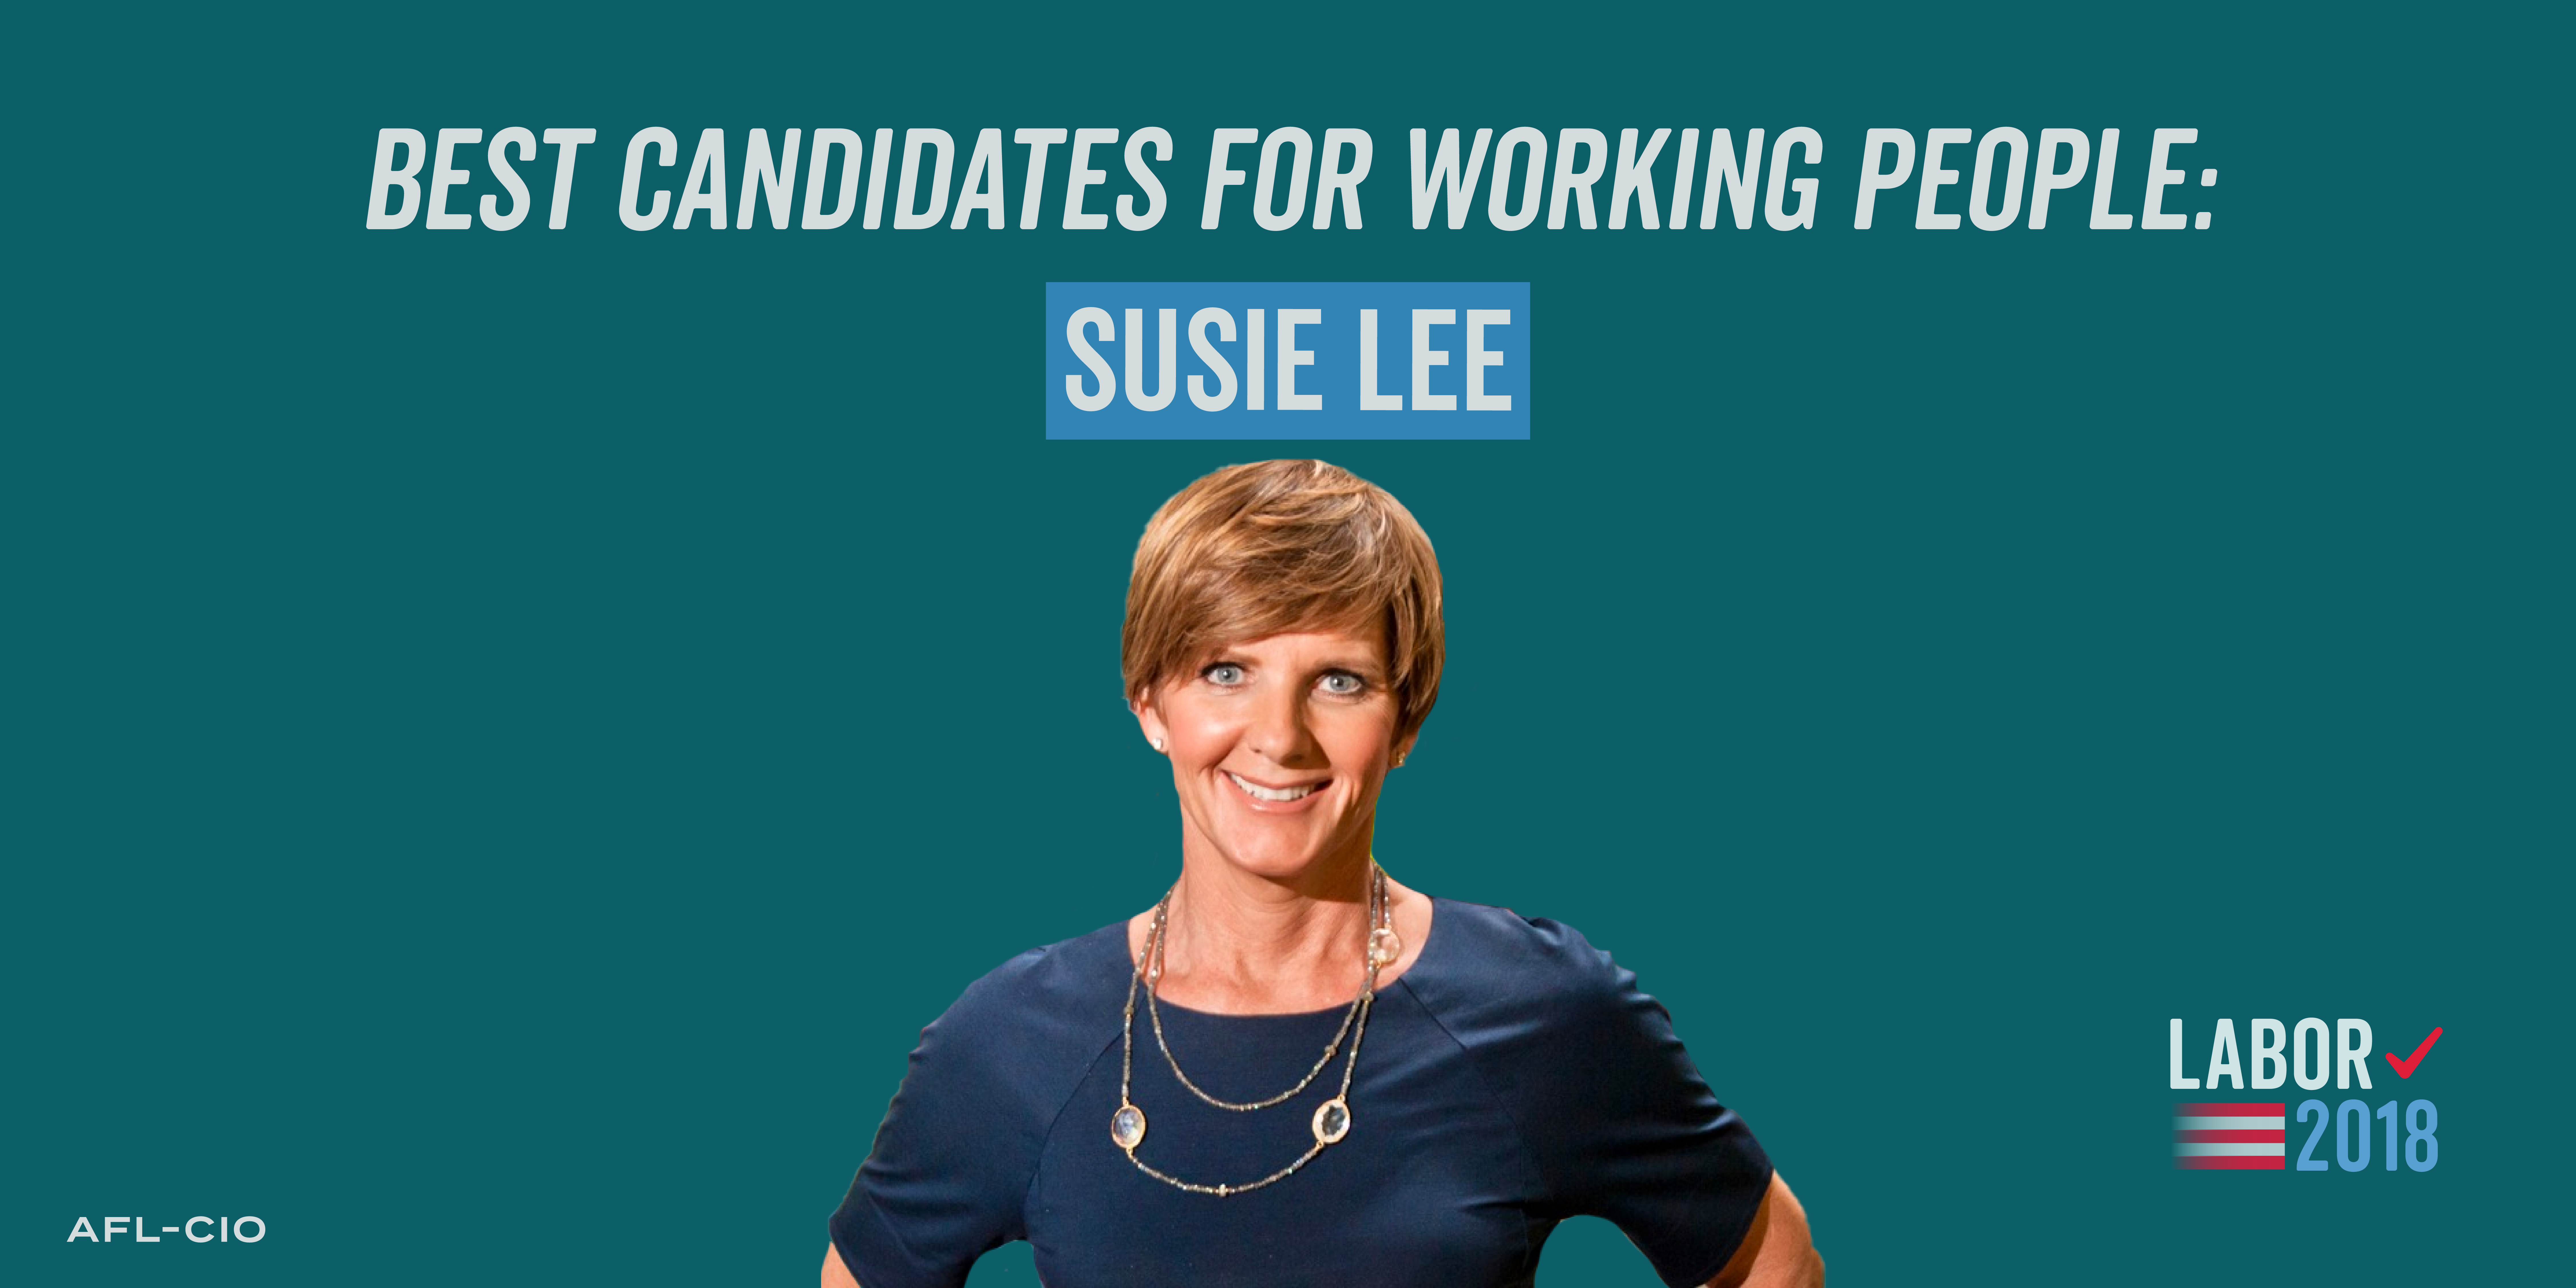 Best Candidates for Working People: Susie Lee